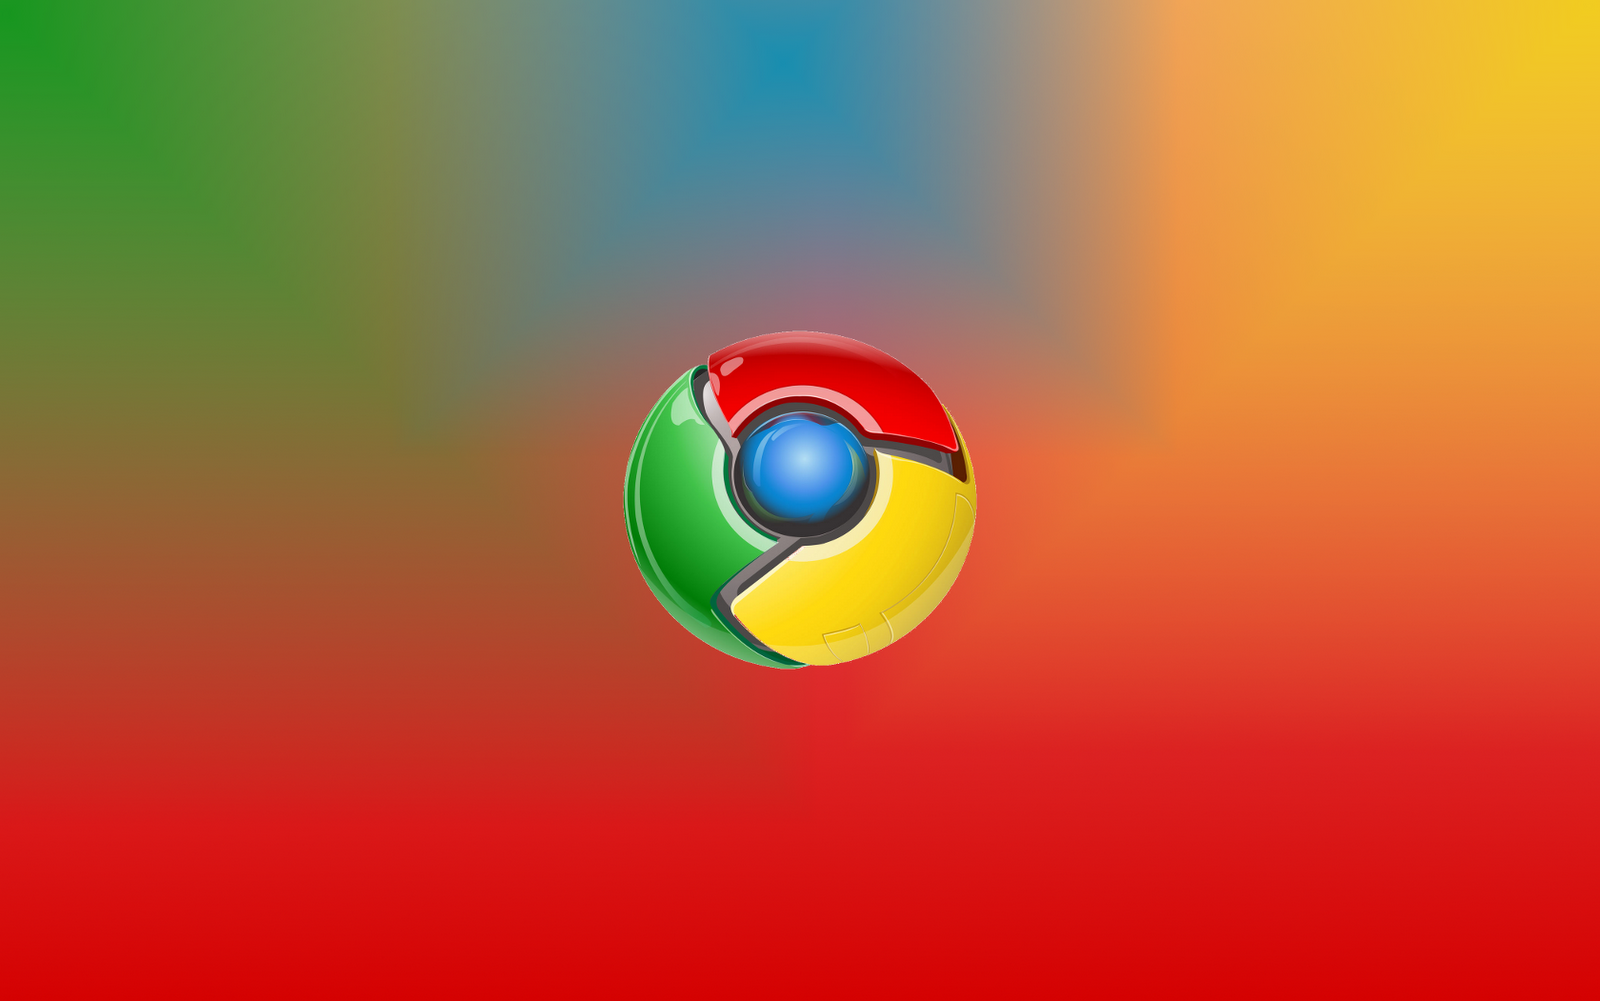 Free Download Google Chrome Backgrounds Google Chrome